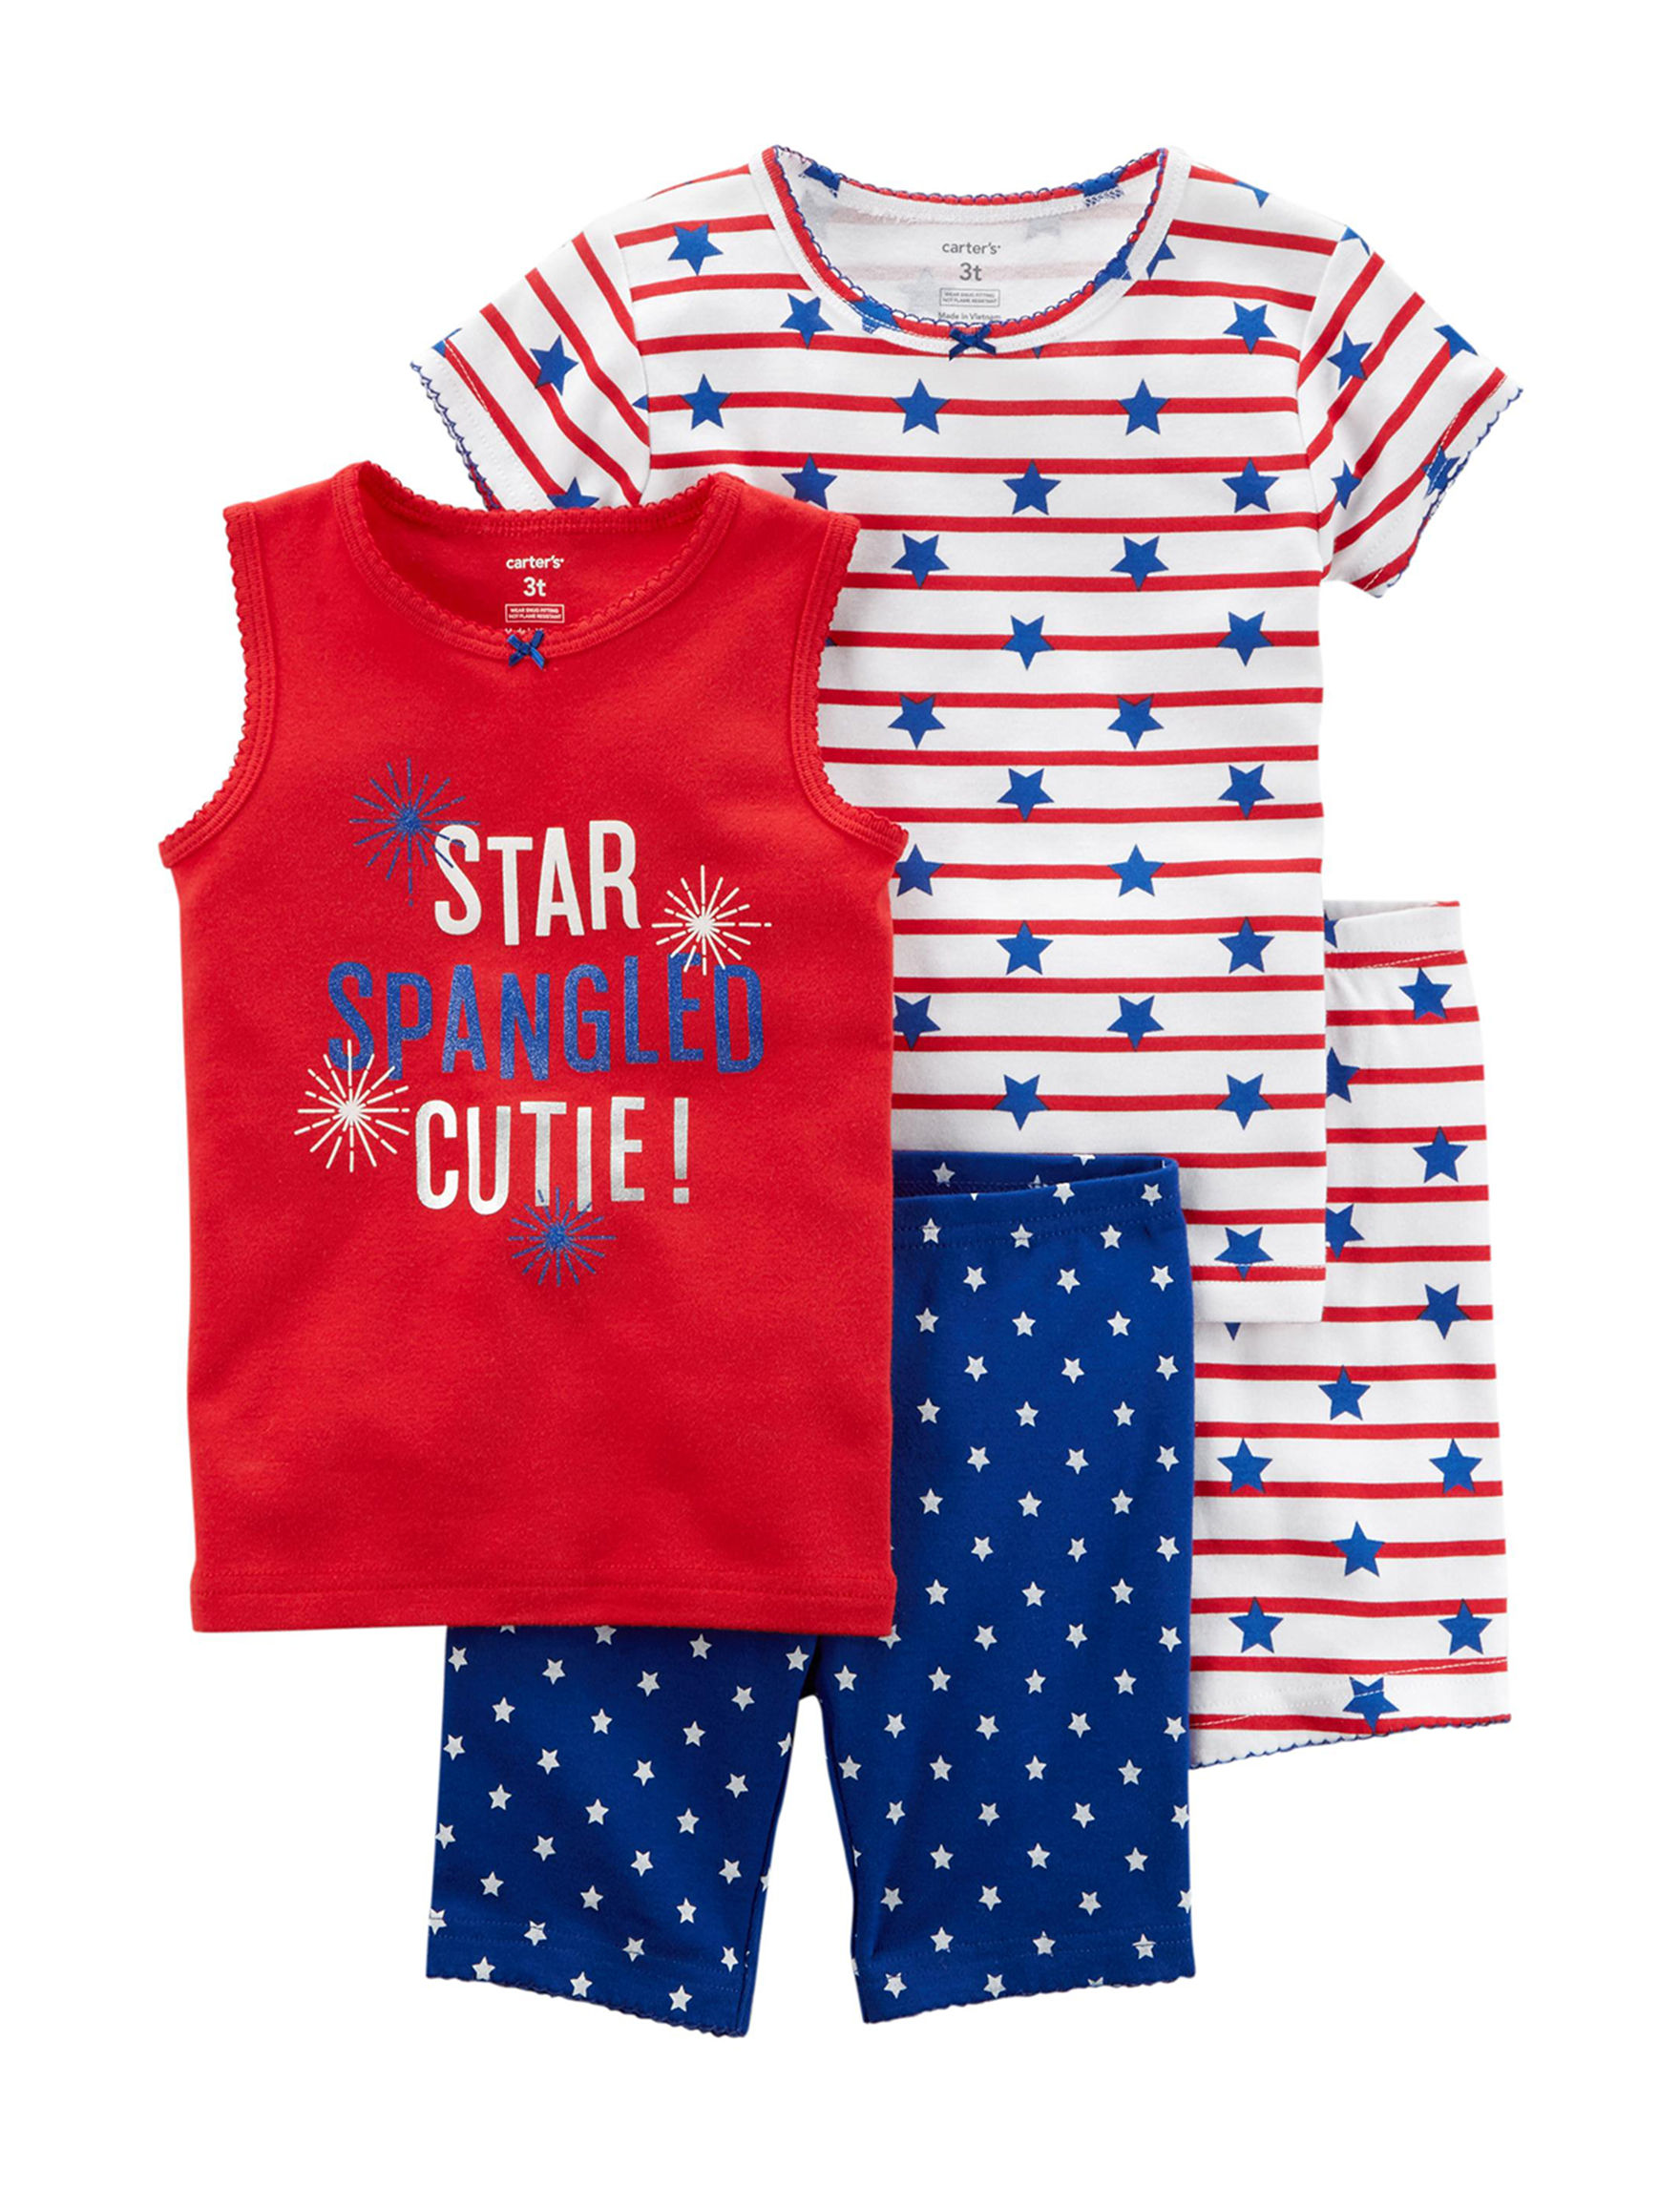 Carter's Red / White / Blue Pajama Sets